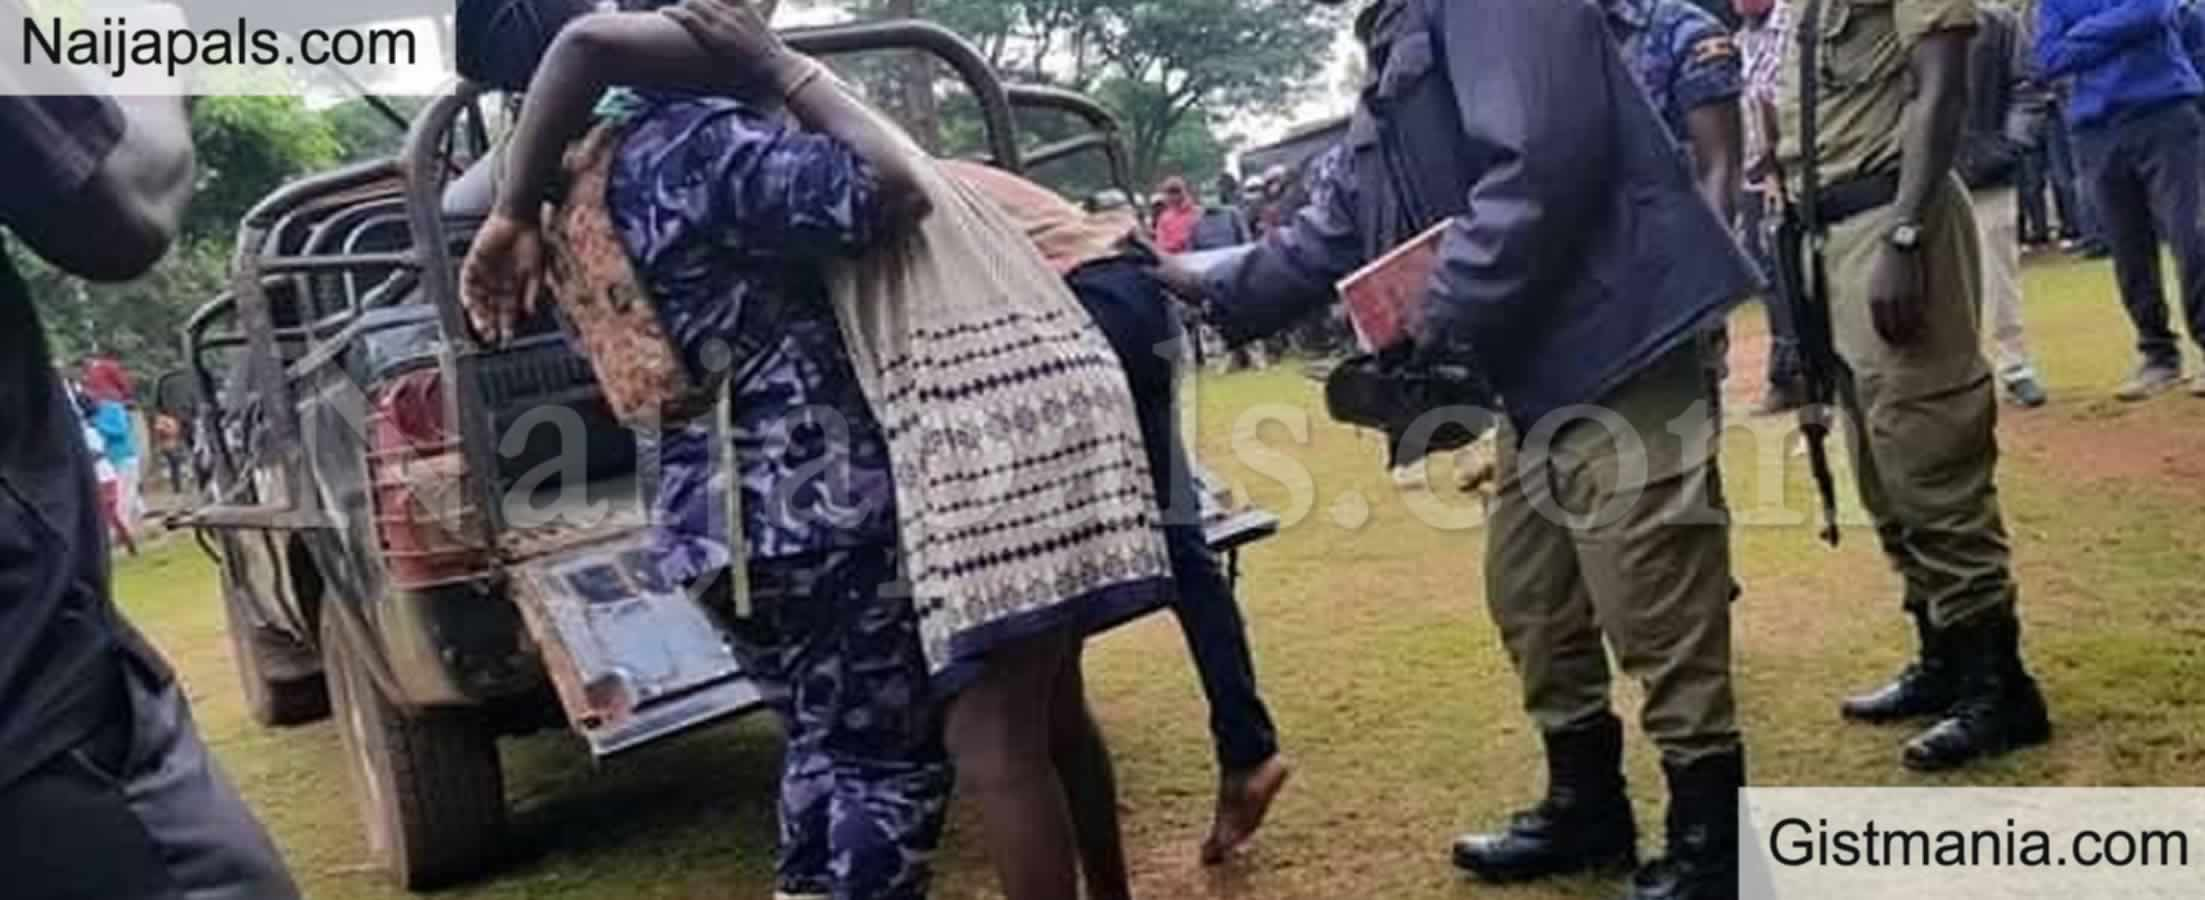 <img alt='.' class='lazyload' data-src='https://img.gistmania.com/emot/shocked.gif' /> Huh?<b> Married Woman And Her Lover Gets Stuck Together During Love Romp </b>(PHOTO)